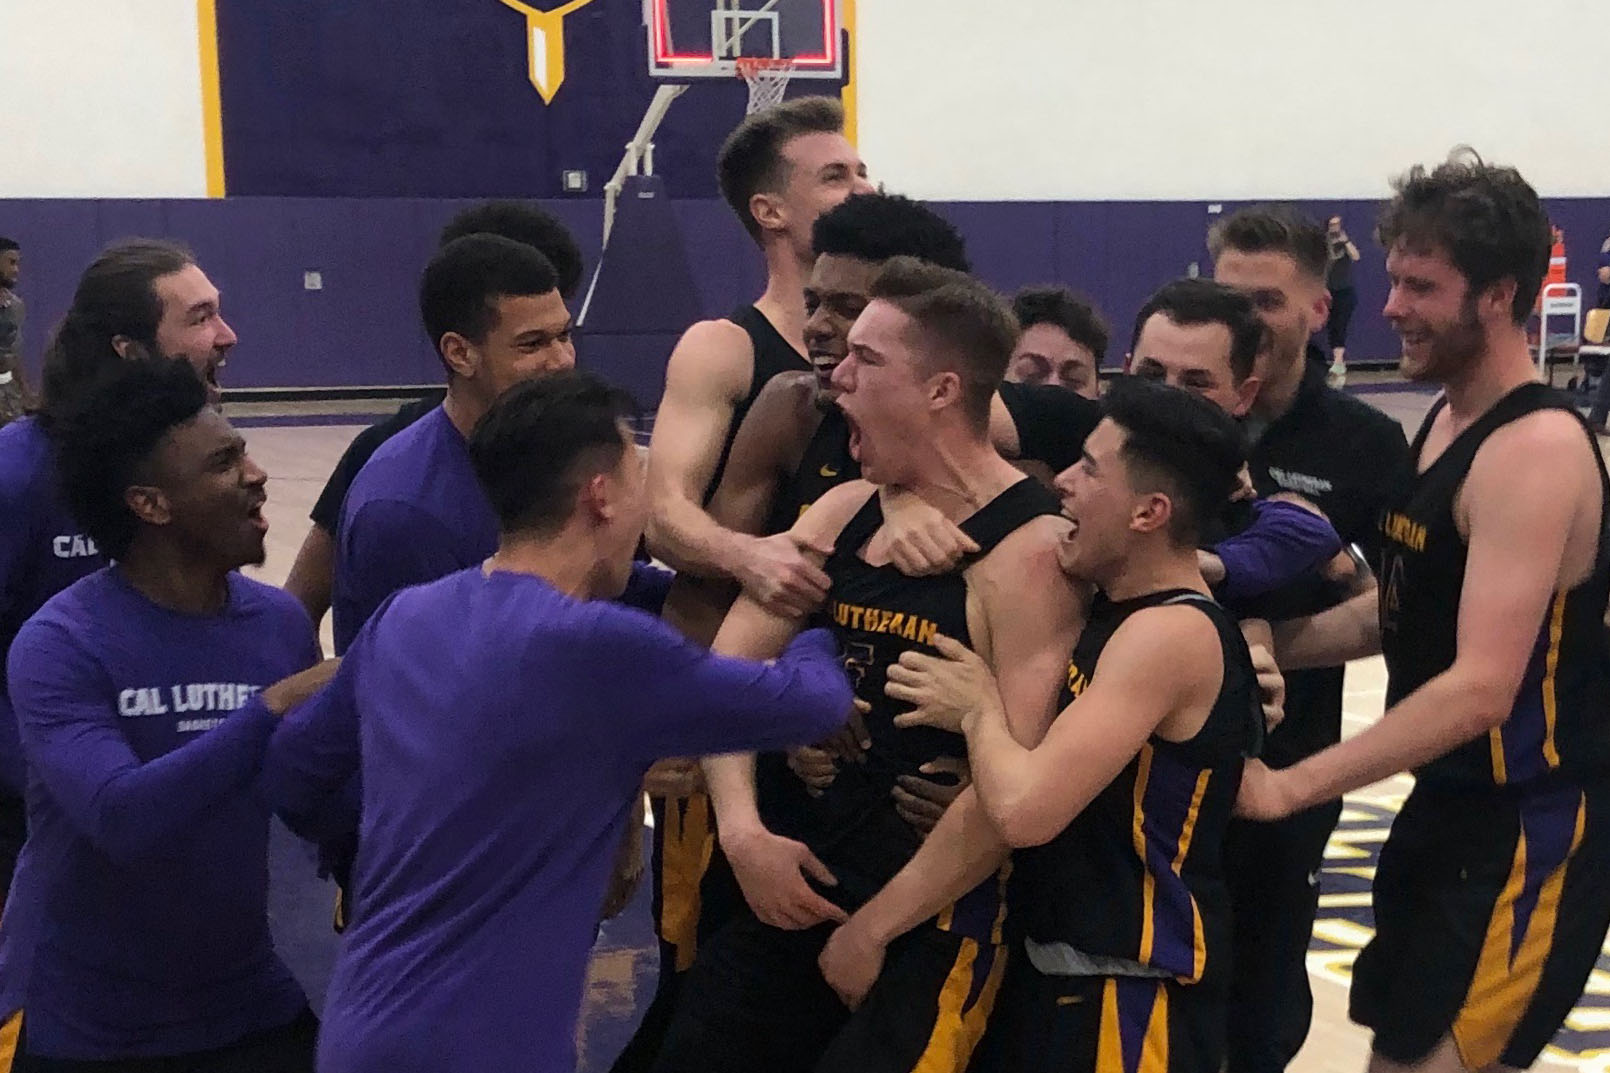 Kyle Ferreira hits a half-court buzzer beater to seal the win against Whittier.